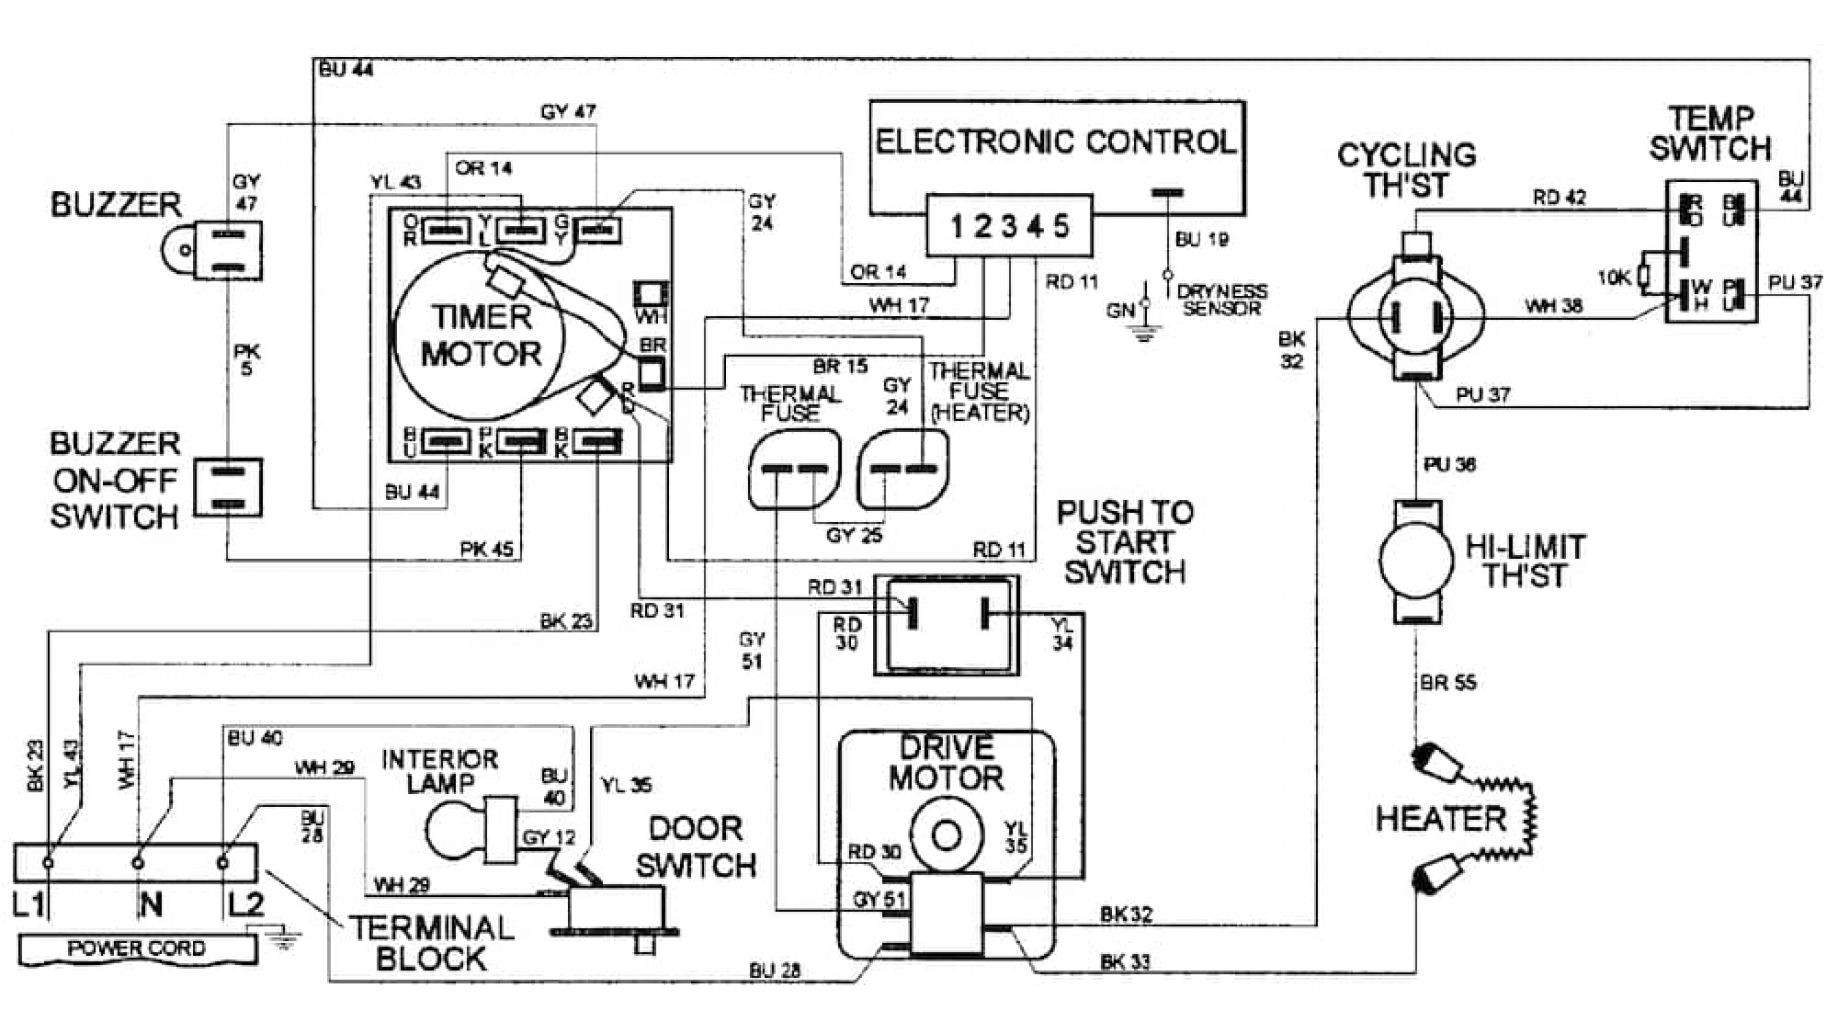 maytag neptune dryer wiring diagram maytag atlantis dryer wiring diagram maytag dryer wiring schematic | free wiring diagram #5